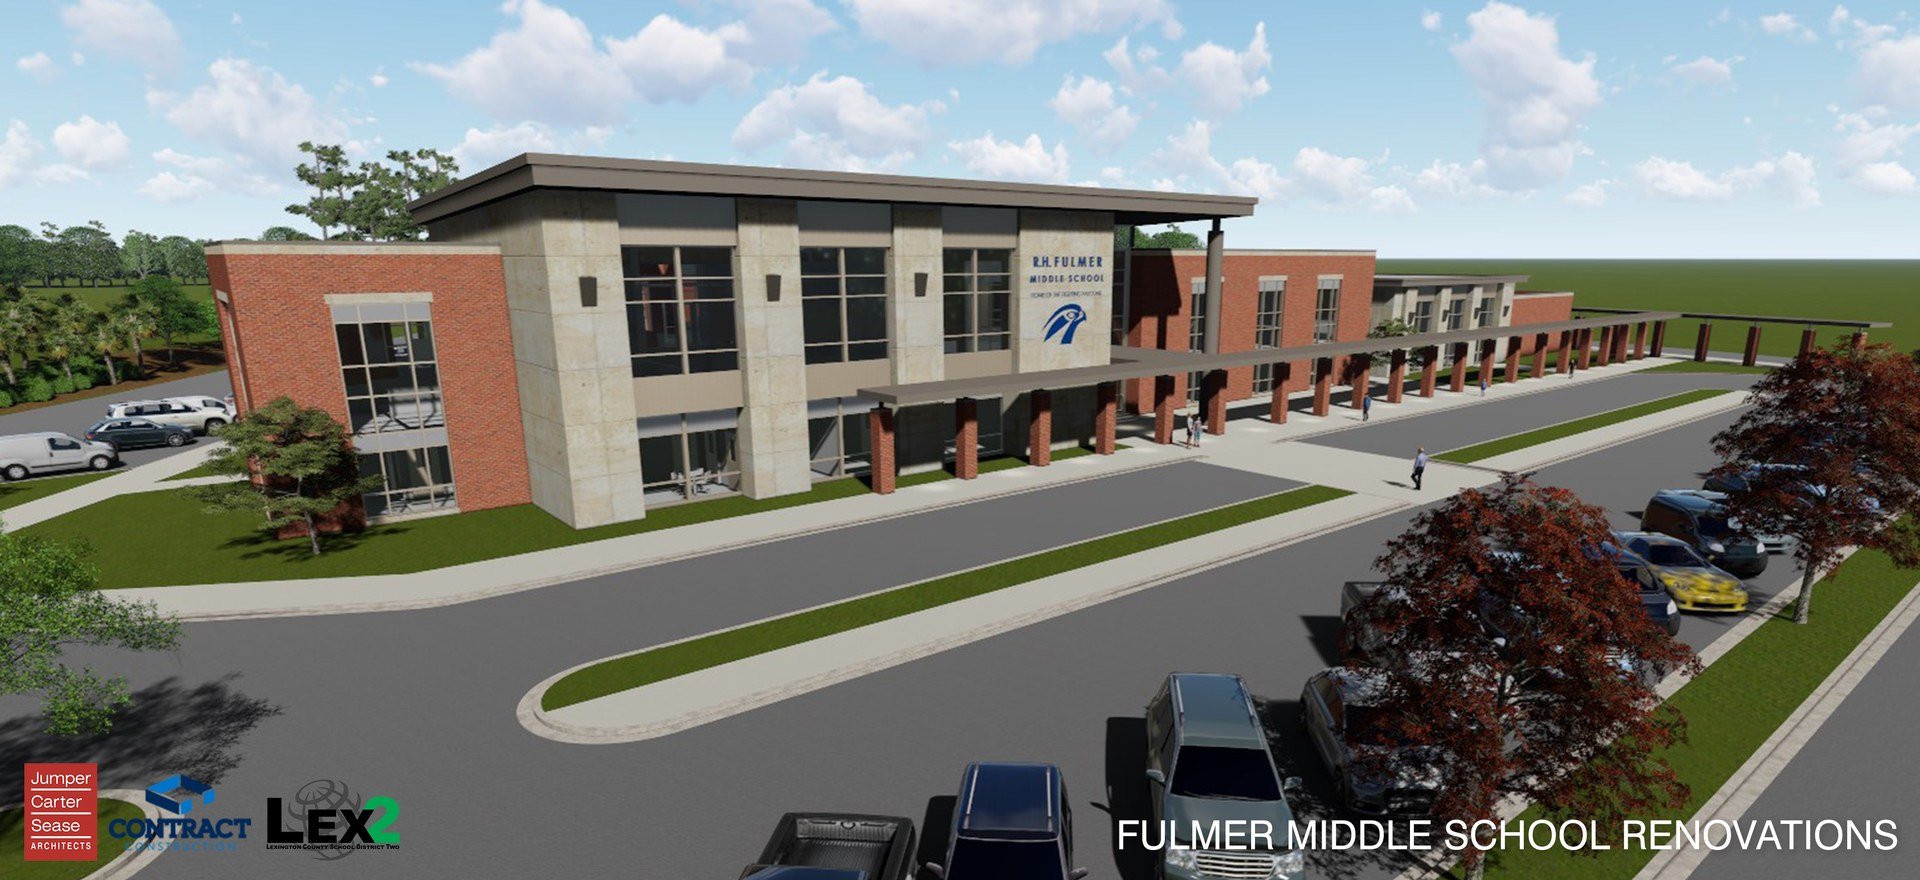 Architect's rendering of Fulmer Middle School Renovations scheduled to begin Summer of 2018